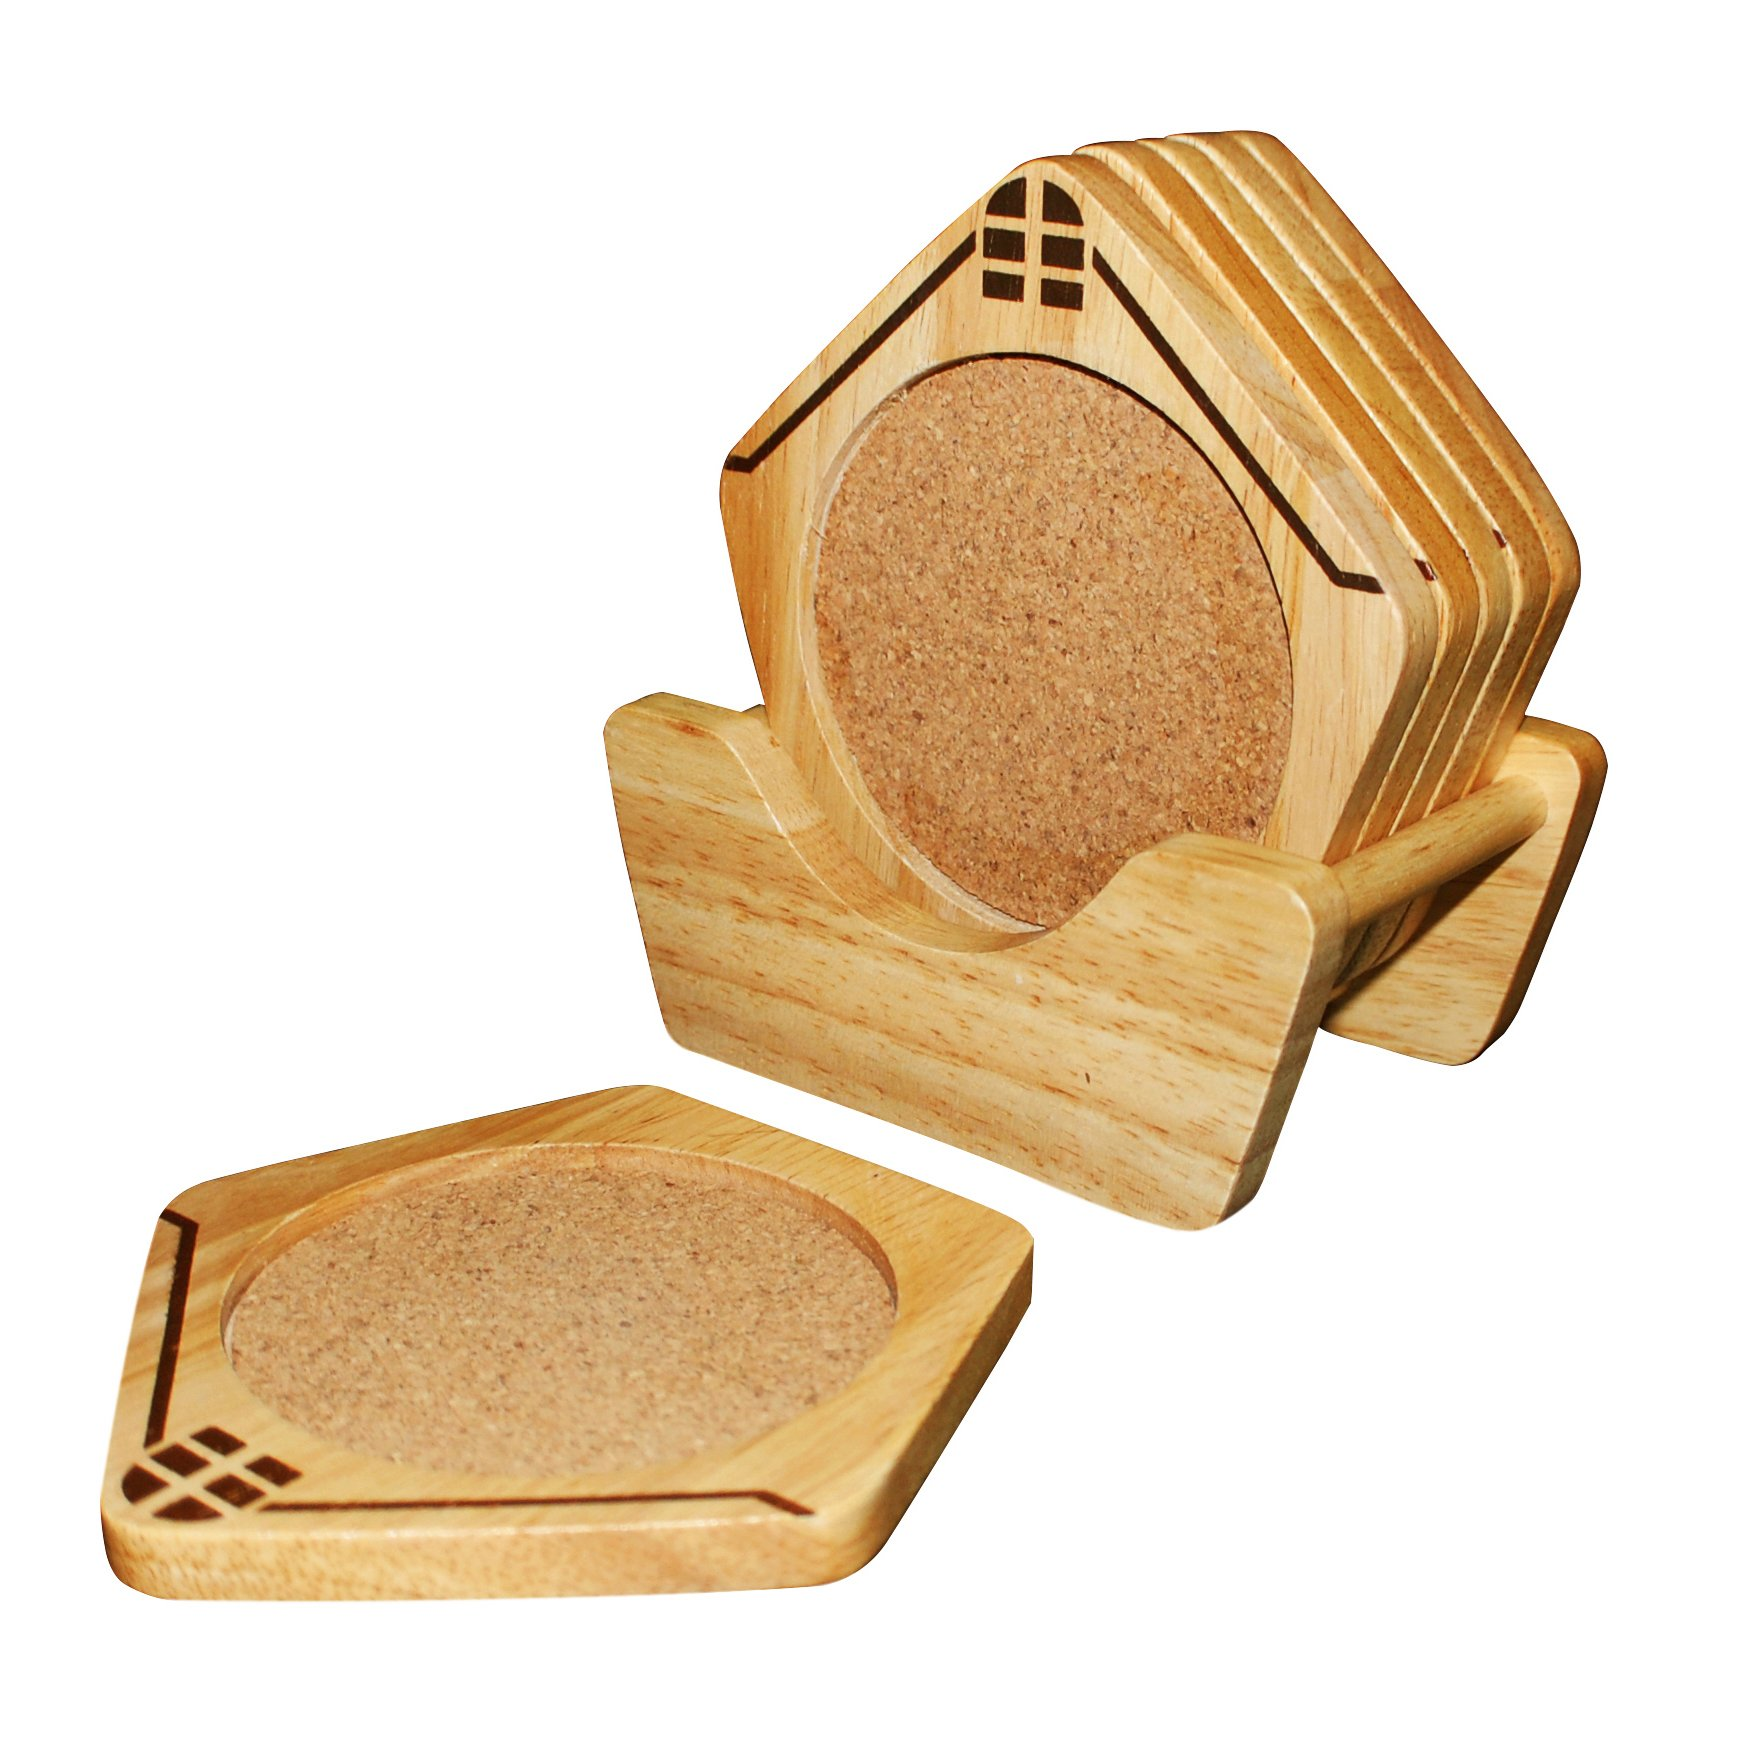 NOCNDEAL Wooden Coasters House Shaped With Holder Set of 6 - Protect Your Furniture from Stains and Moisture - Great Gift Idea - Great Decor Idea - Order Now